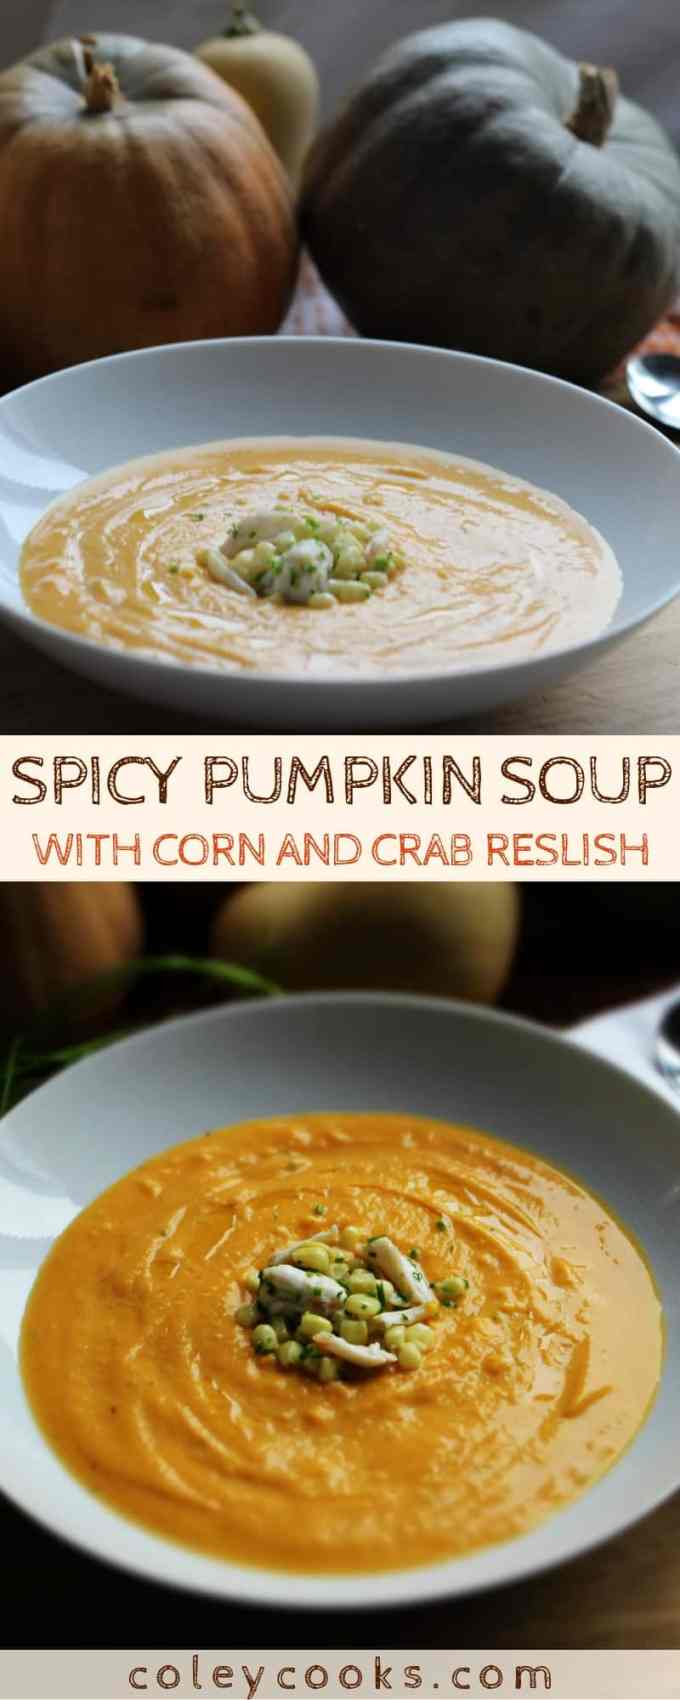 SPICY PUMPKIN SOUP with Corn + Crab Relish |This easy pumpkin soup is vegan on it's own and made even better with a little corn and crab relish . #thanksgiving #pumpkin #soup #recipe #crab #spicy #easy #corn | ColeyCooks.com